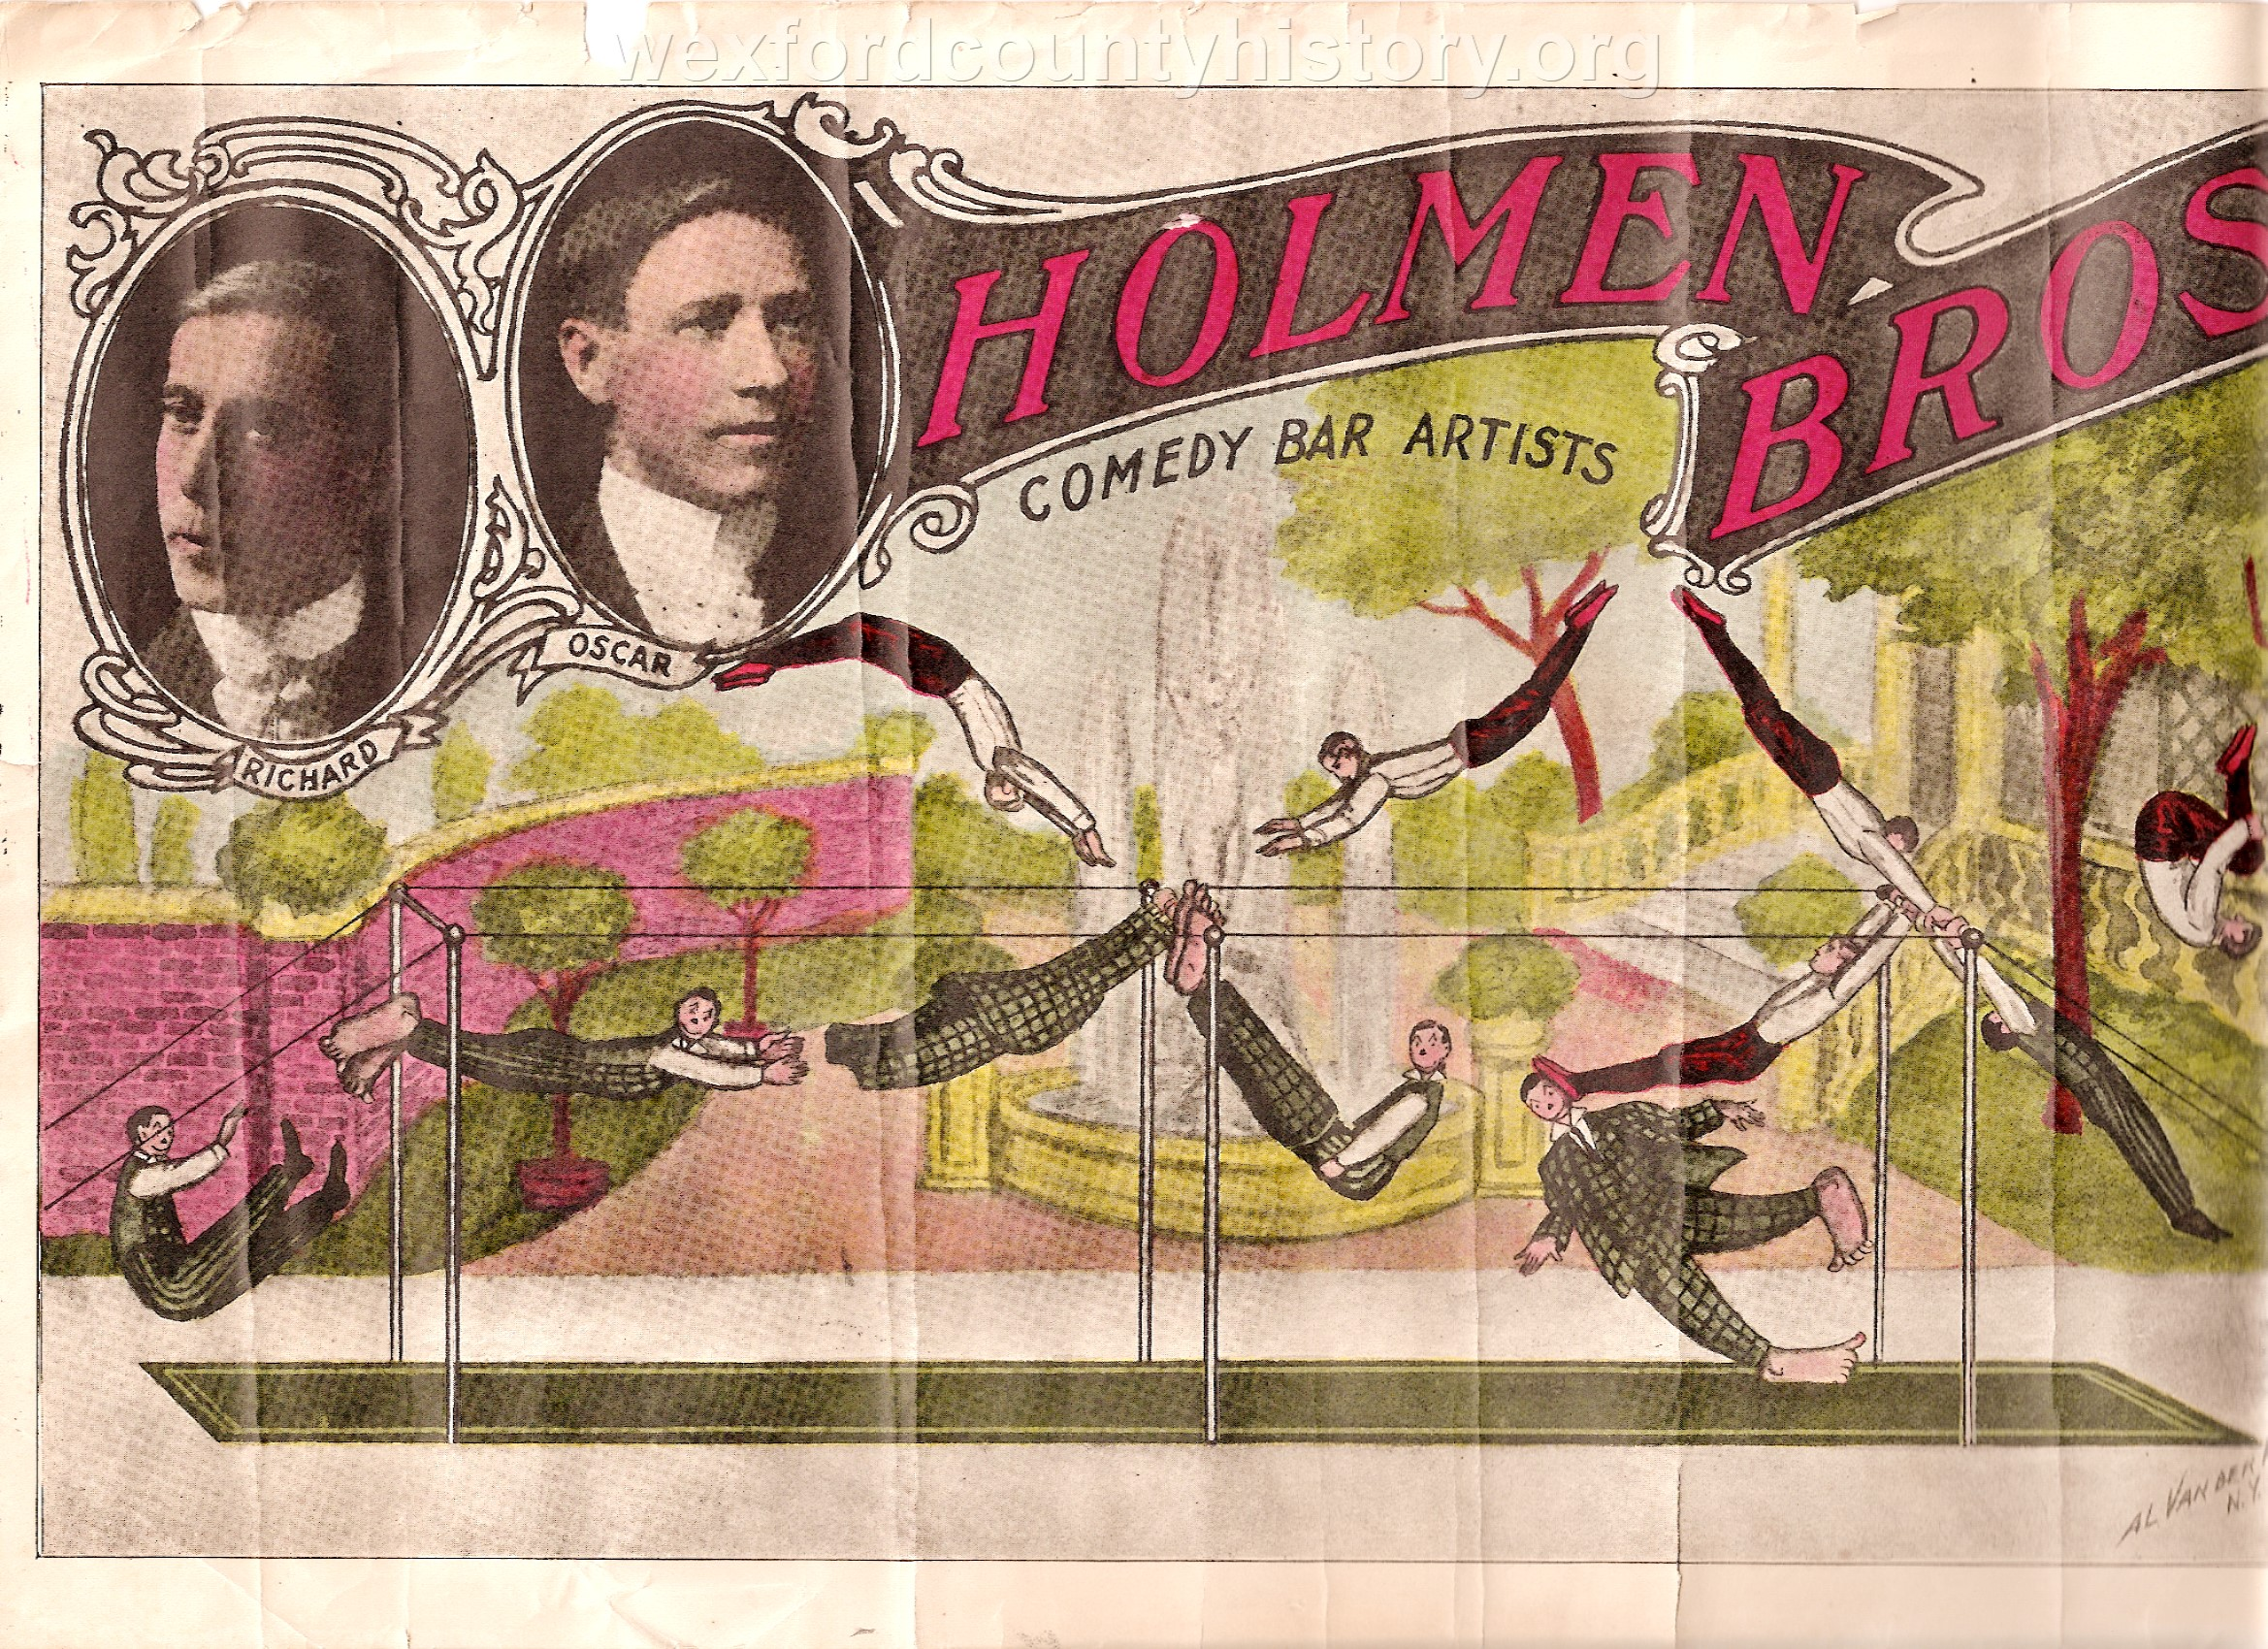 Cadillac-Objects-Holmen-Brothers-Advertising-Poster-1